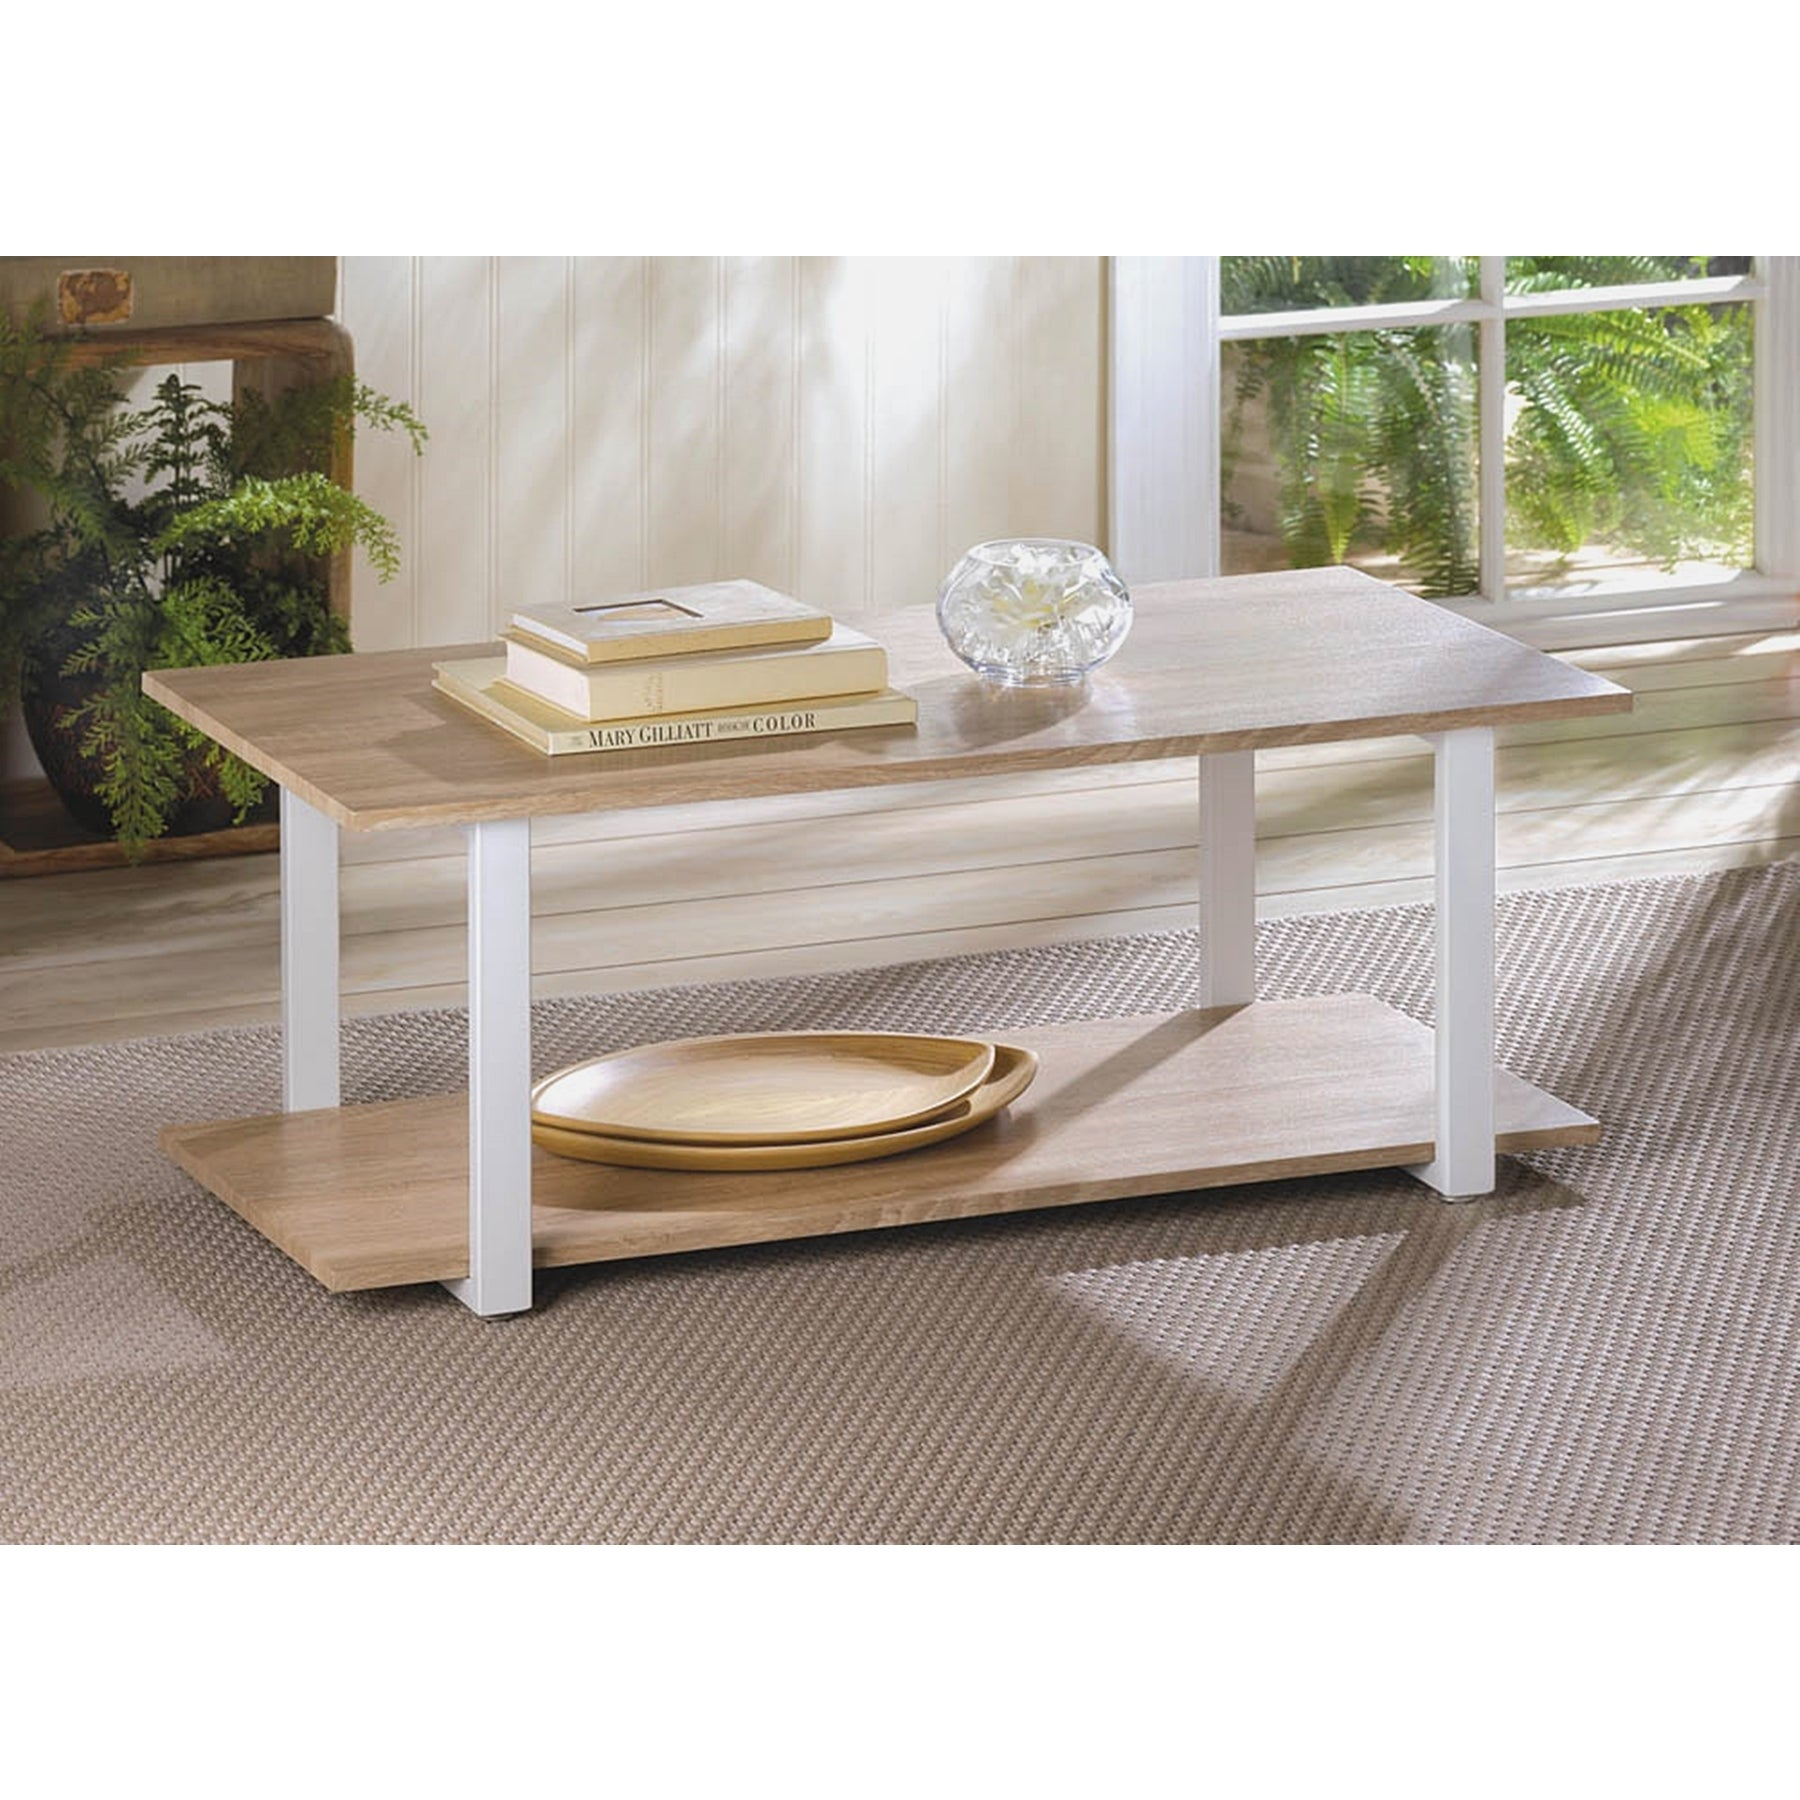 ashray country style coffee table free shipping today and end tables slate lift top homesense blankets ultra modern espresso rectangular white console with glass doors liberty